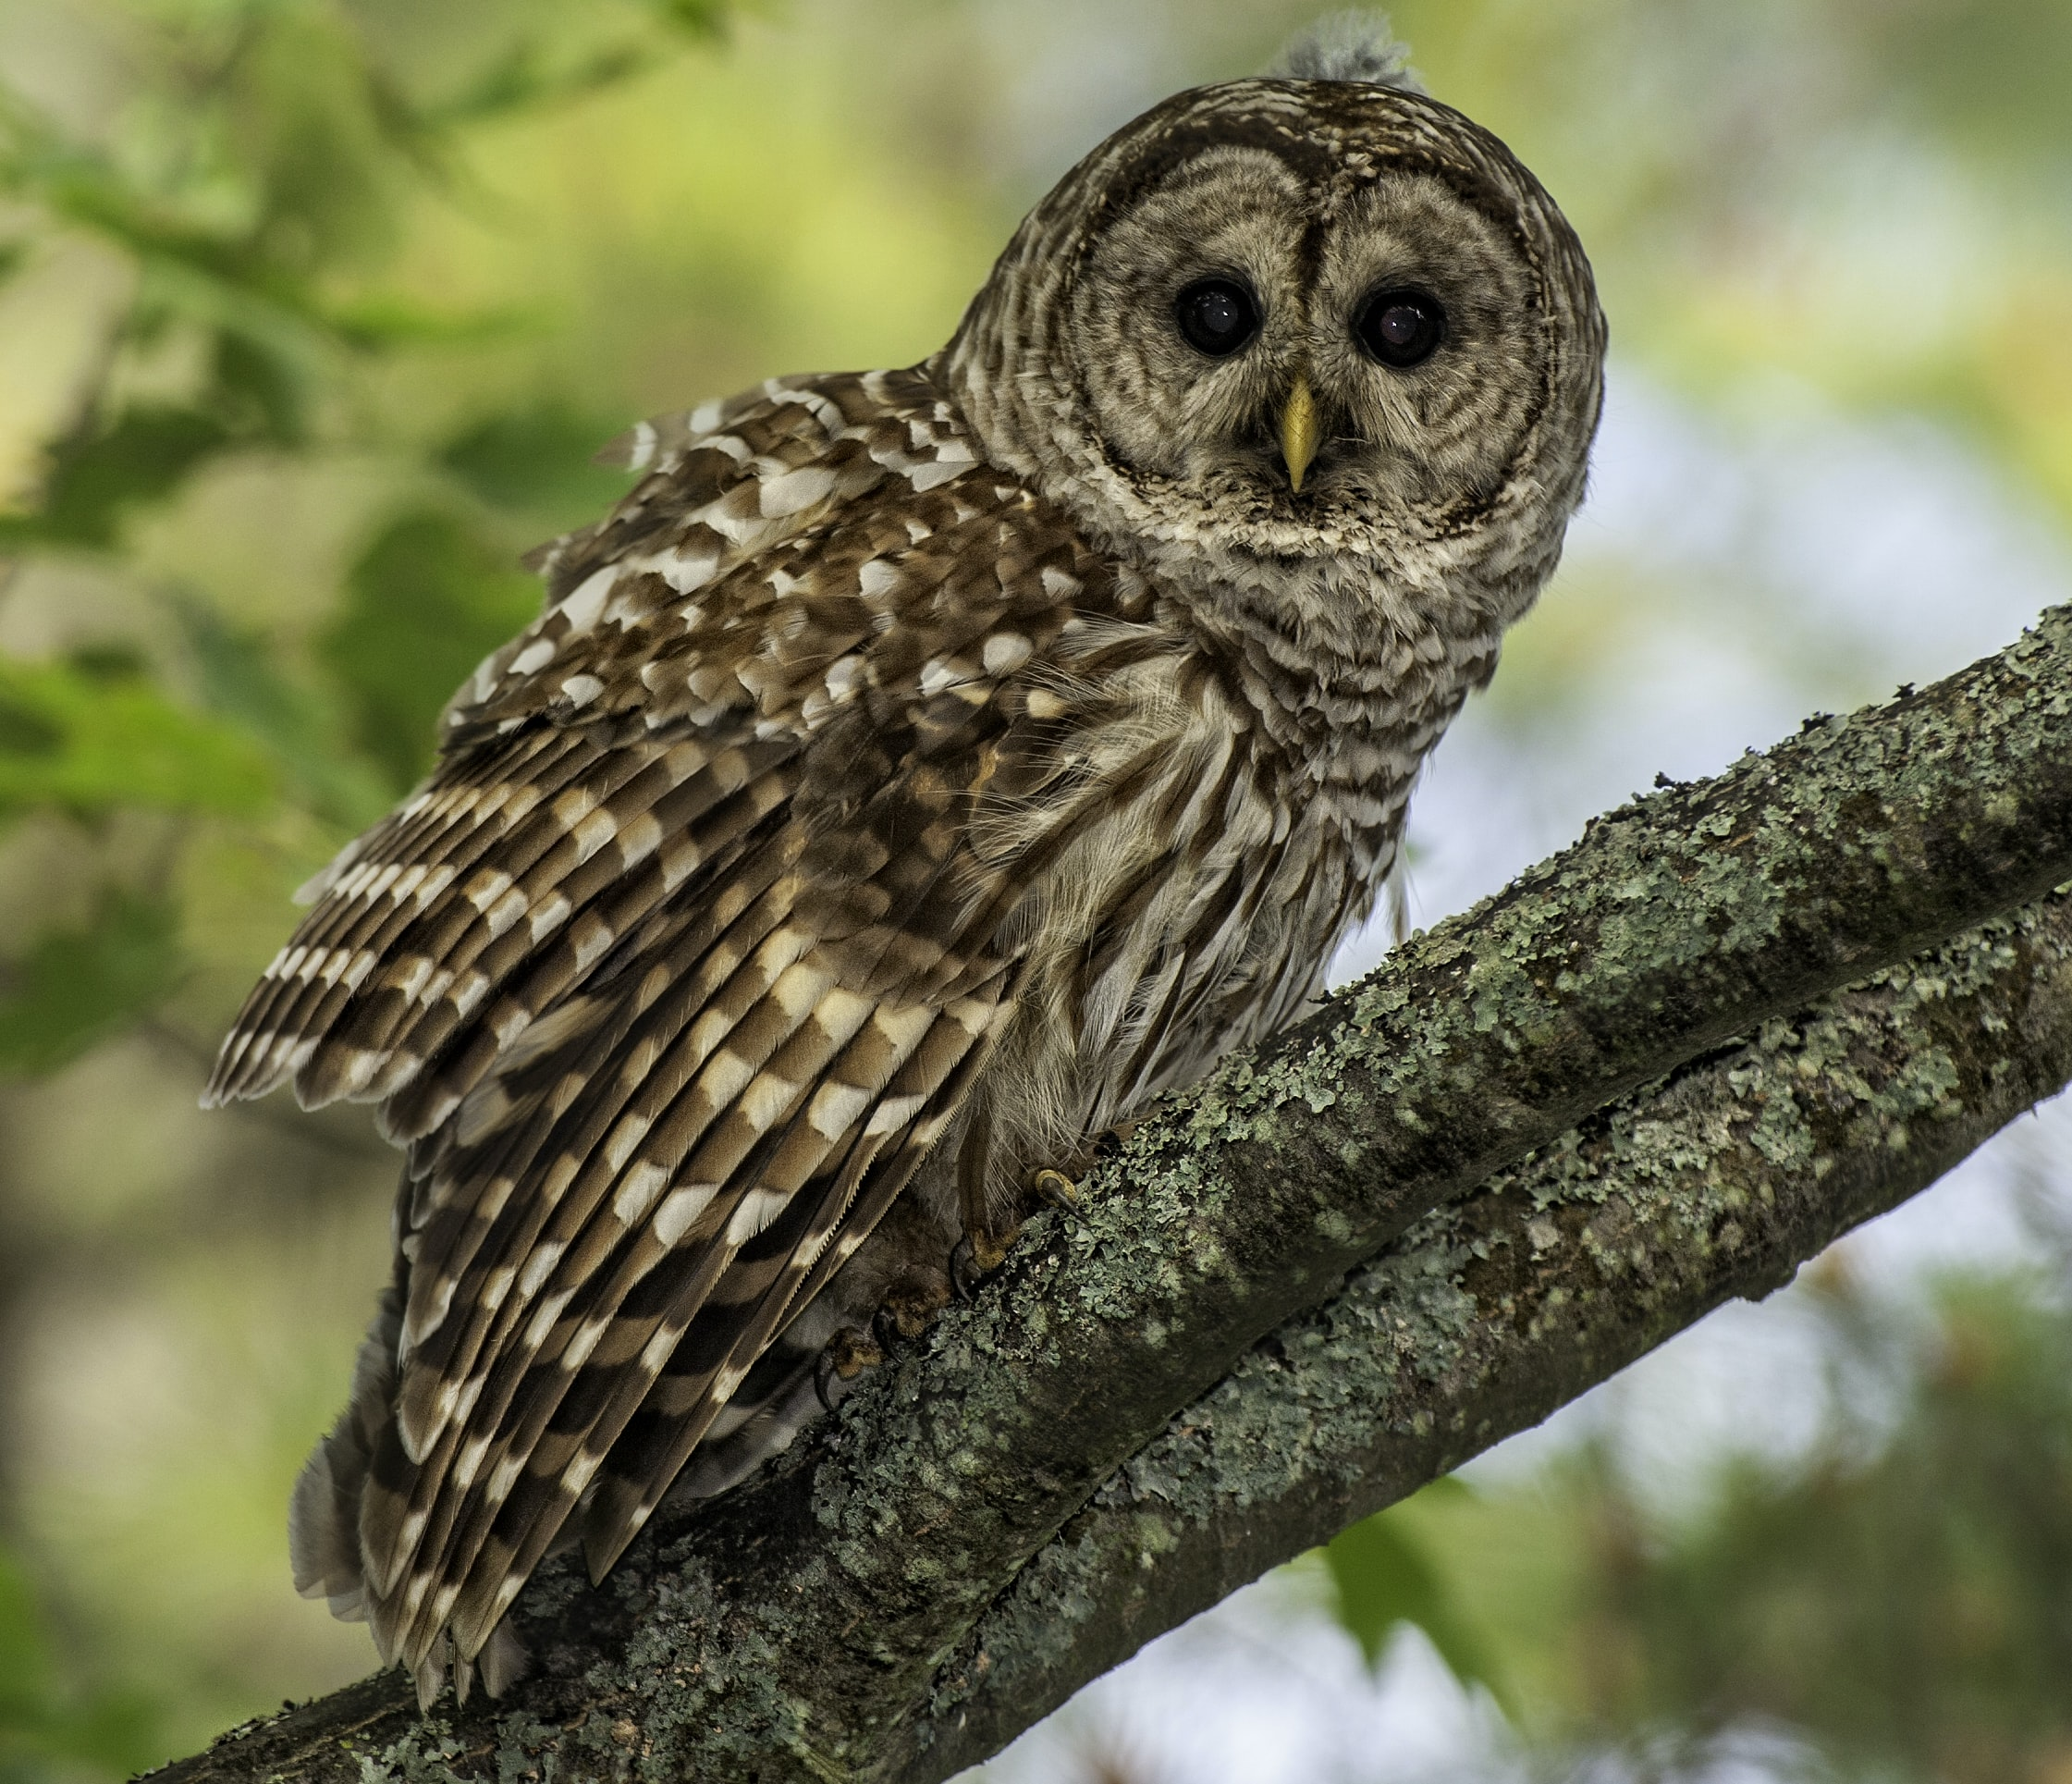 brown owl perched on brown wooden tree during daytime